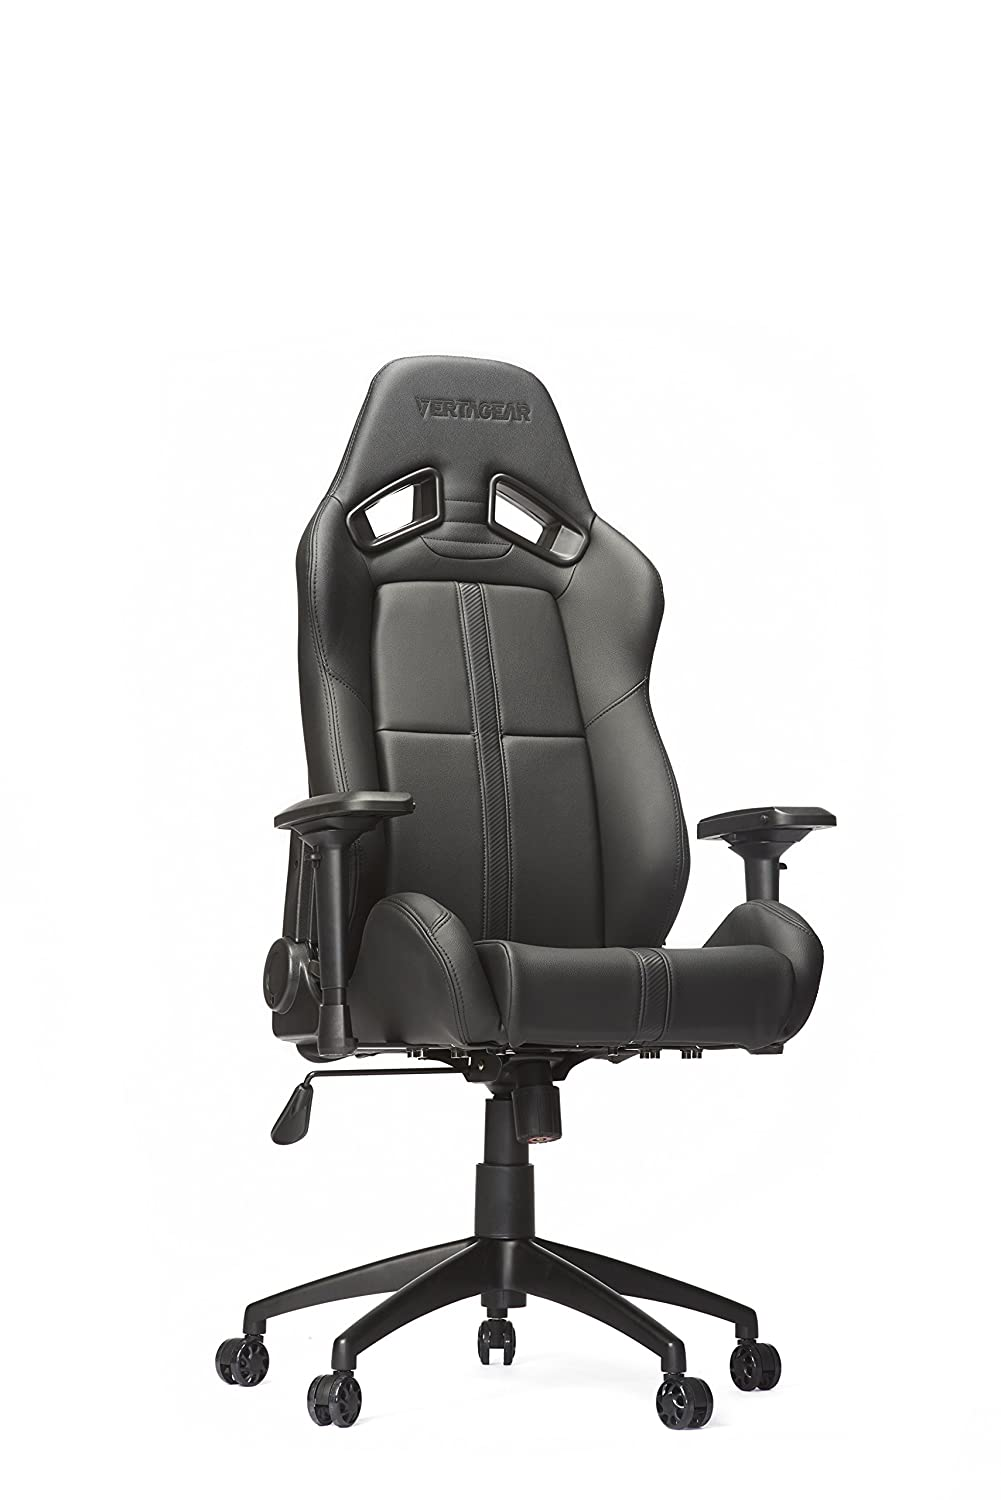 Gaming Chairs For Big Men For Big And Heavy People